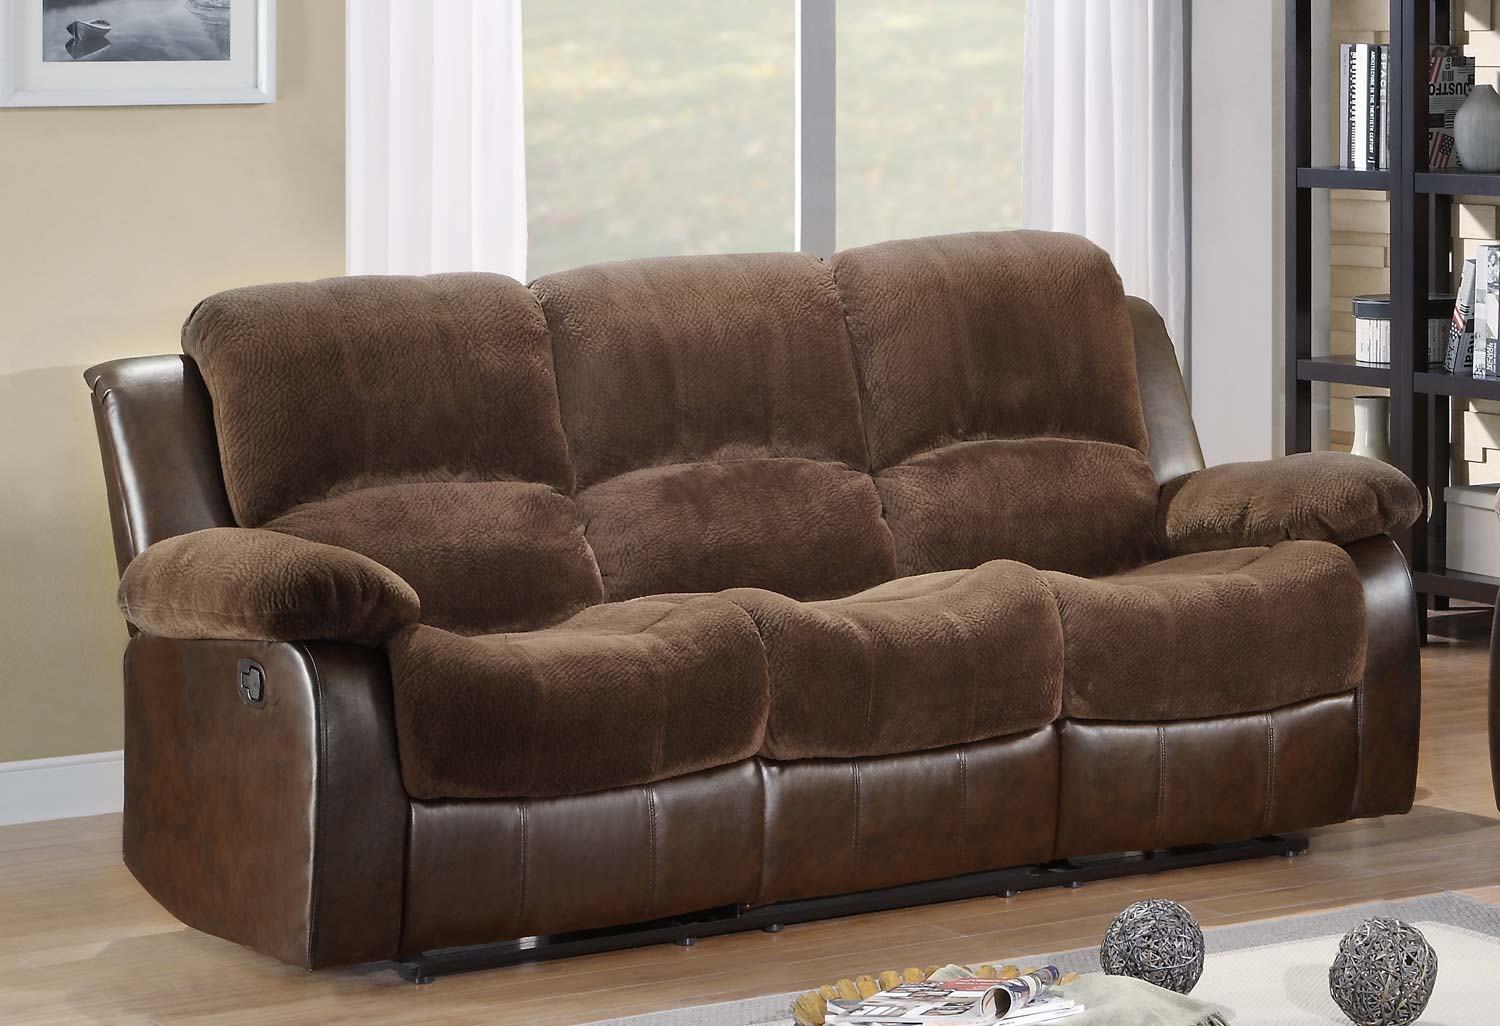 The Click Clack Sofa The Best Choice For A Sofa Bed Bed